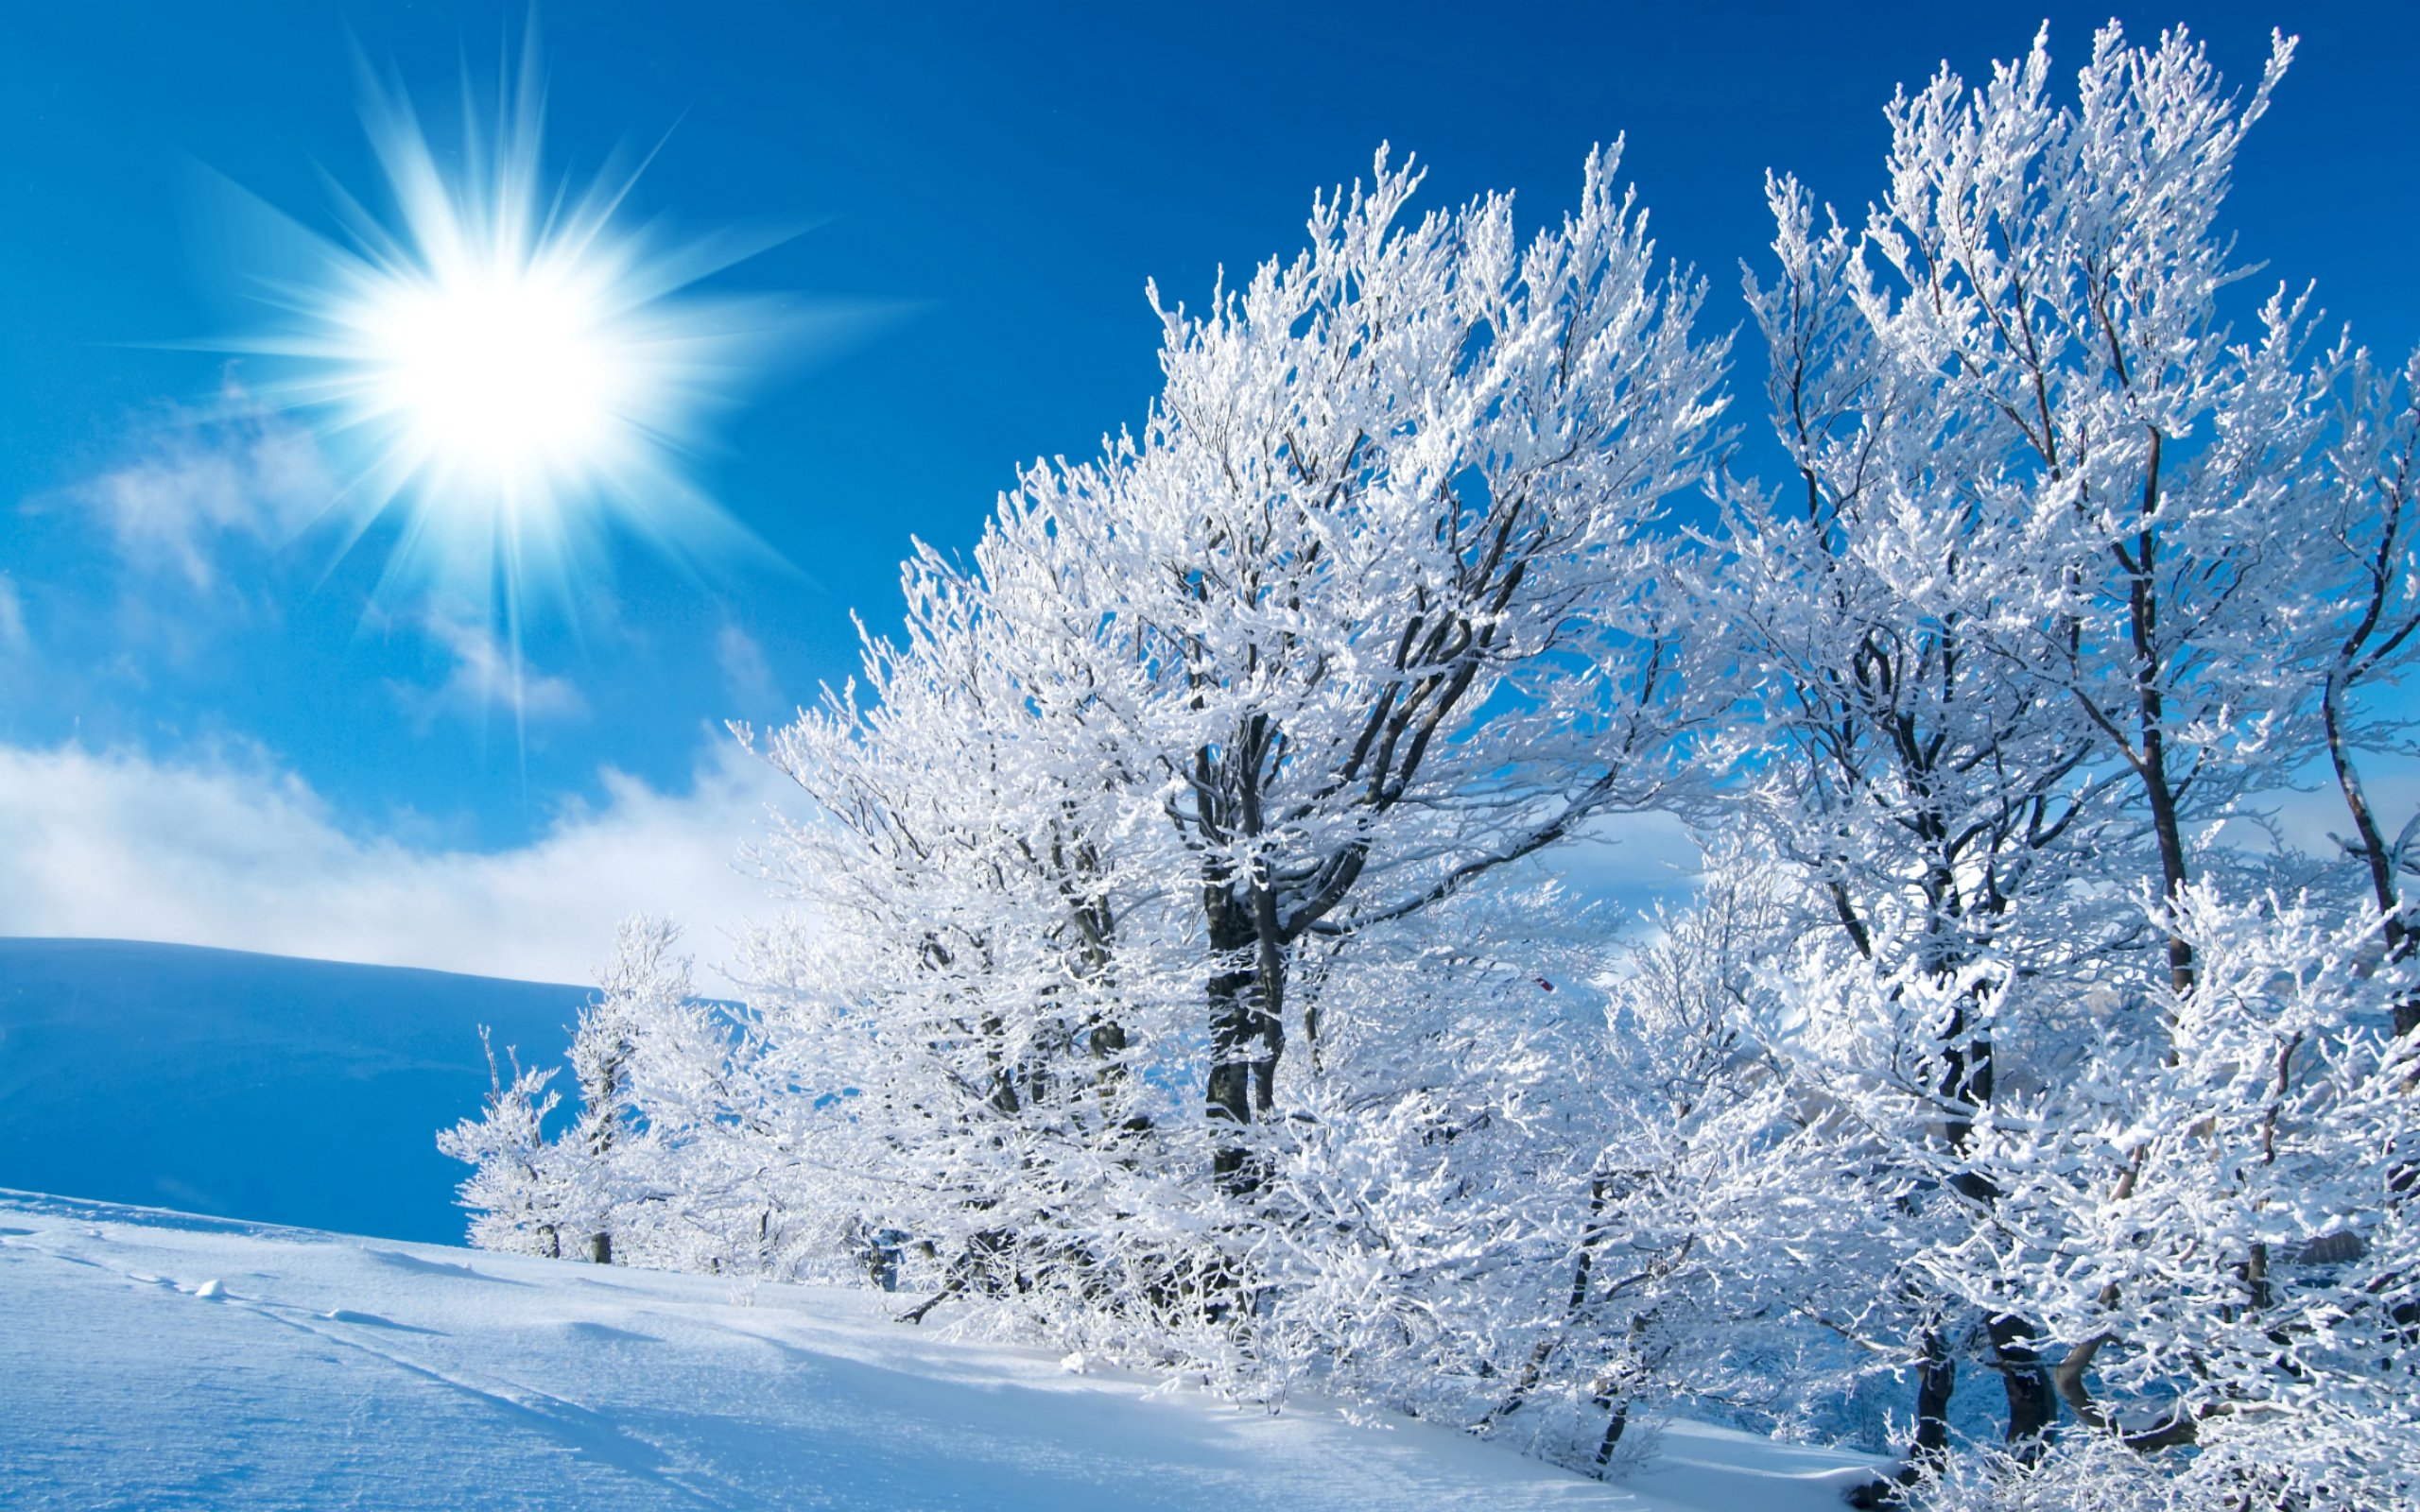 winter wallpaper snow hd wallpaper for desktop scene 2560x1600